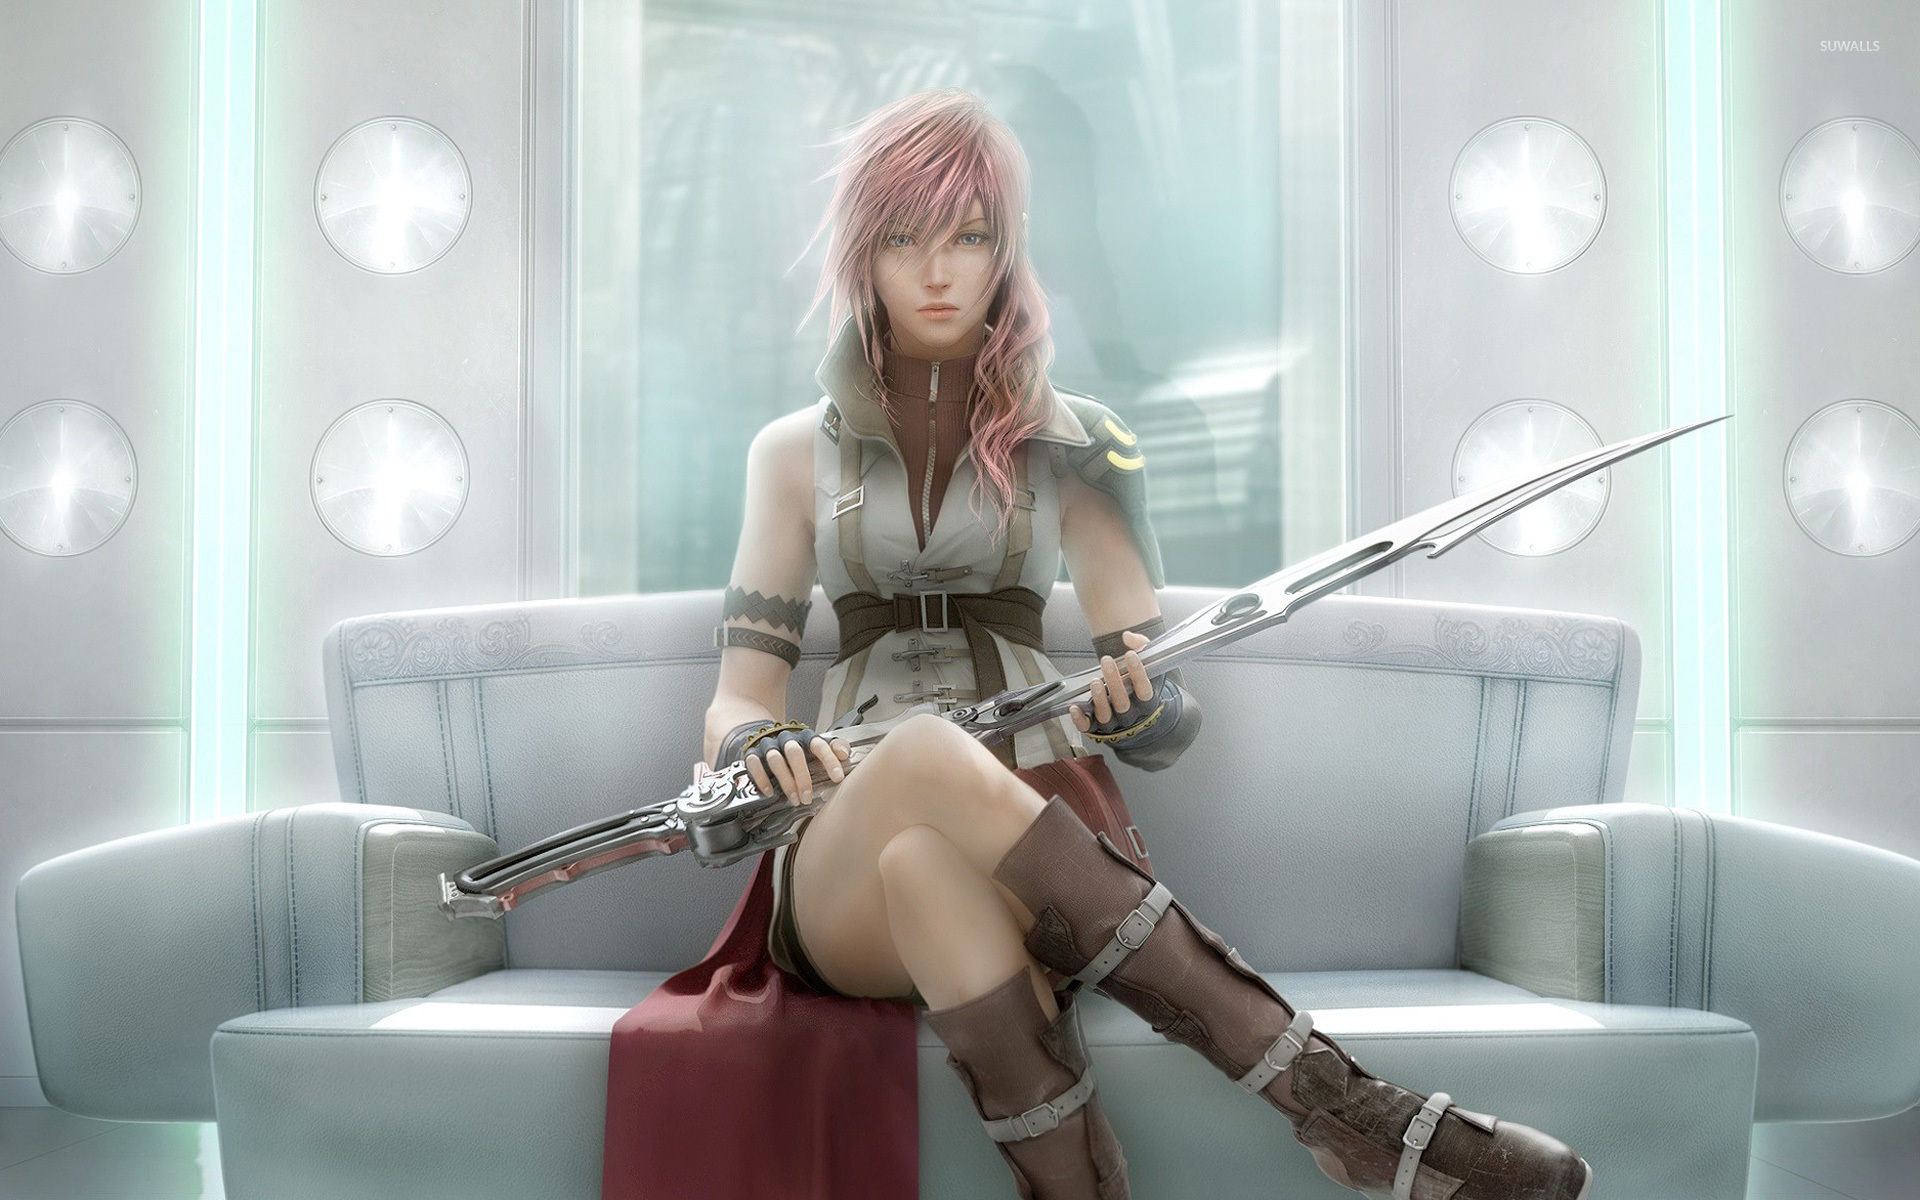 Lightning final fantasy xiii 2 wallpaper game wallpapers 4788 lightning final fantasy xiii 2 wallpaper voltagebd Choice Image